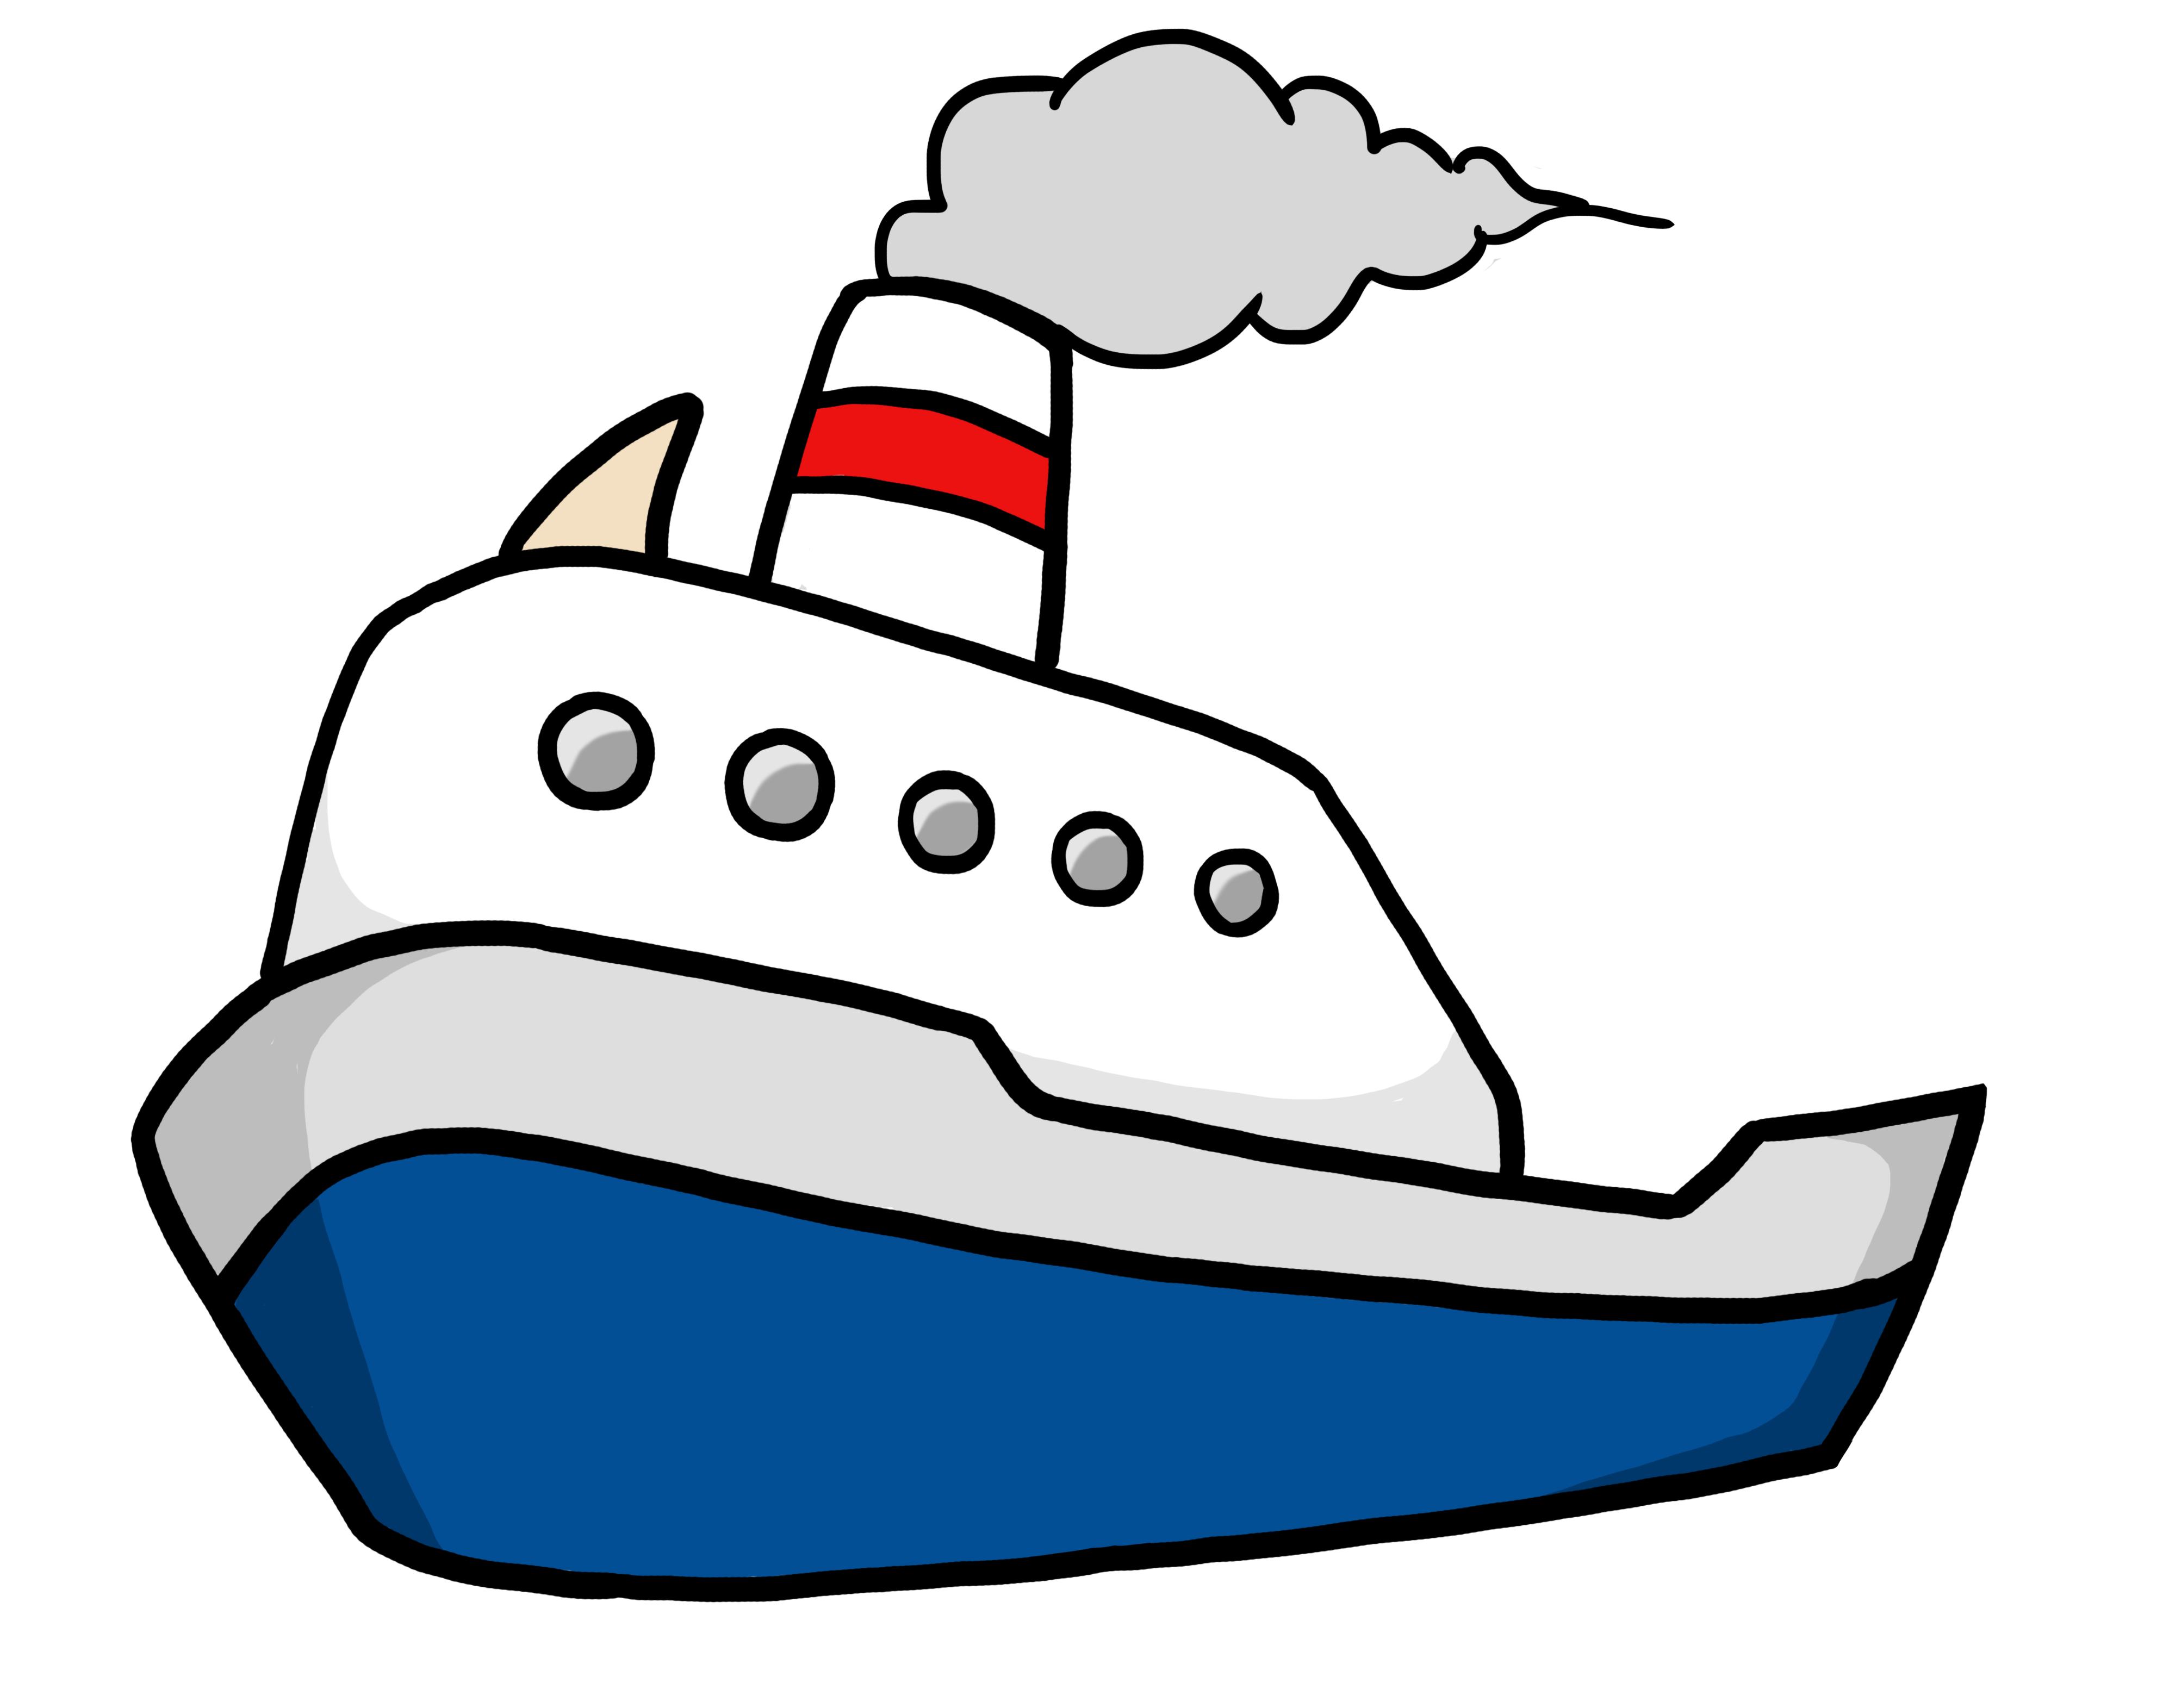 Cruise Ship clipart #2, Download drawings